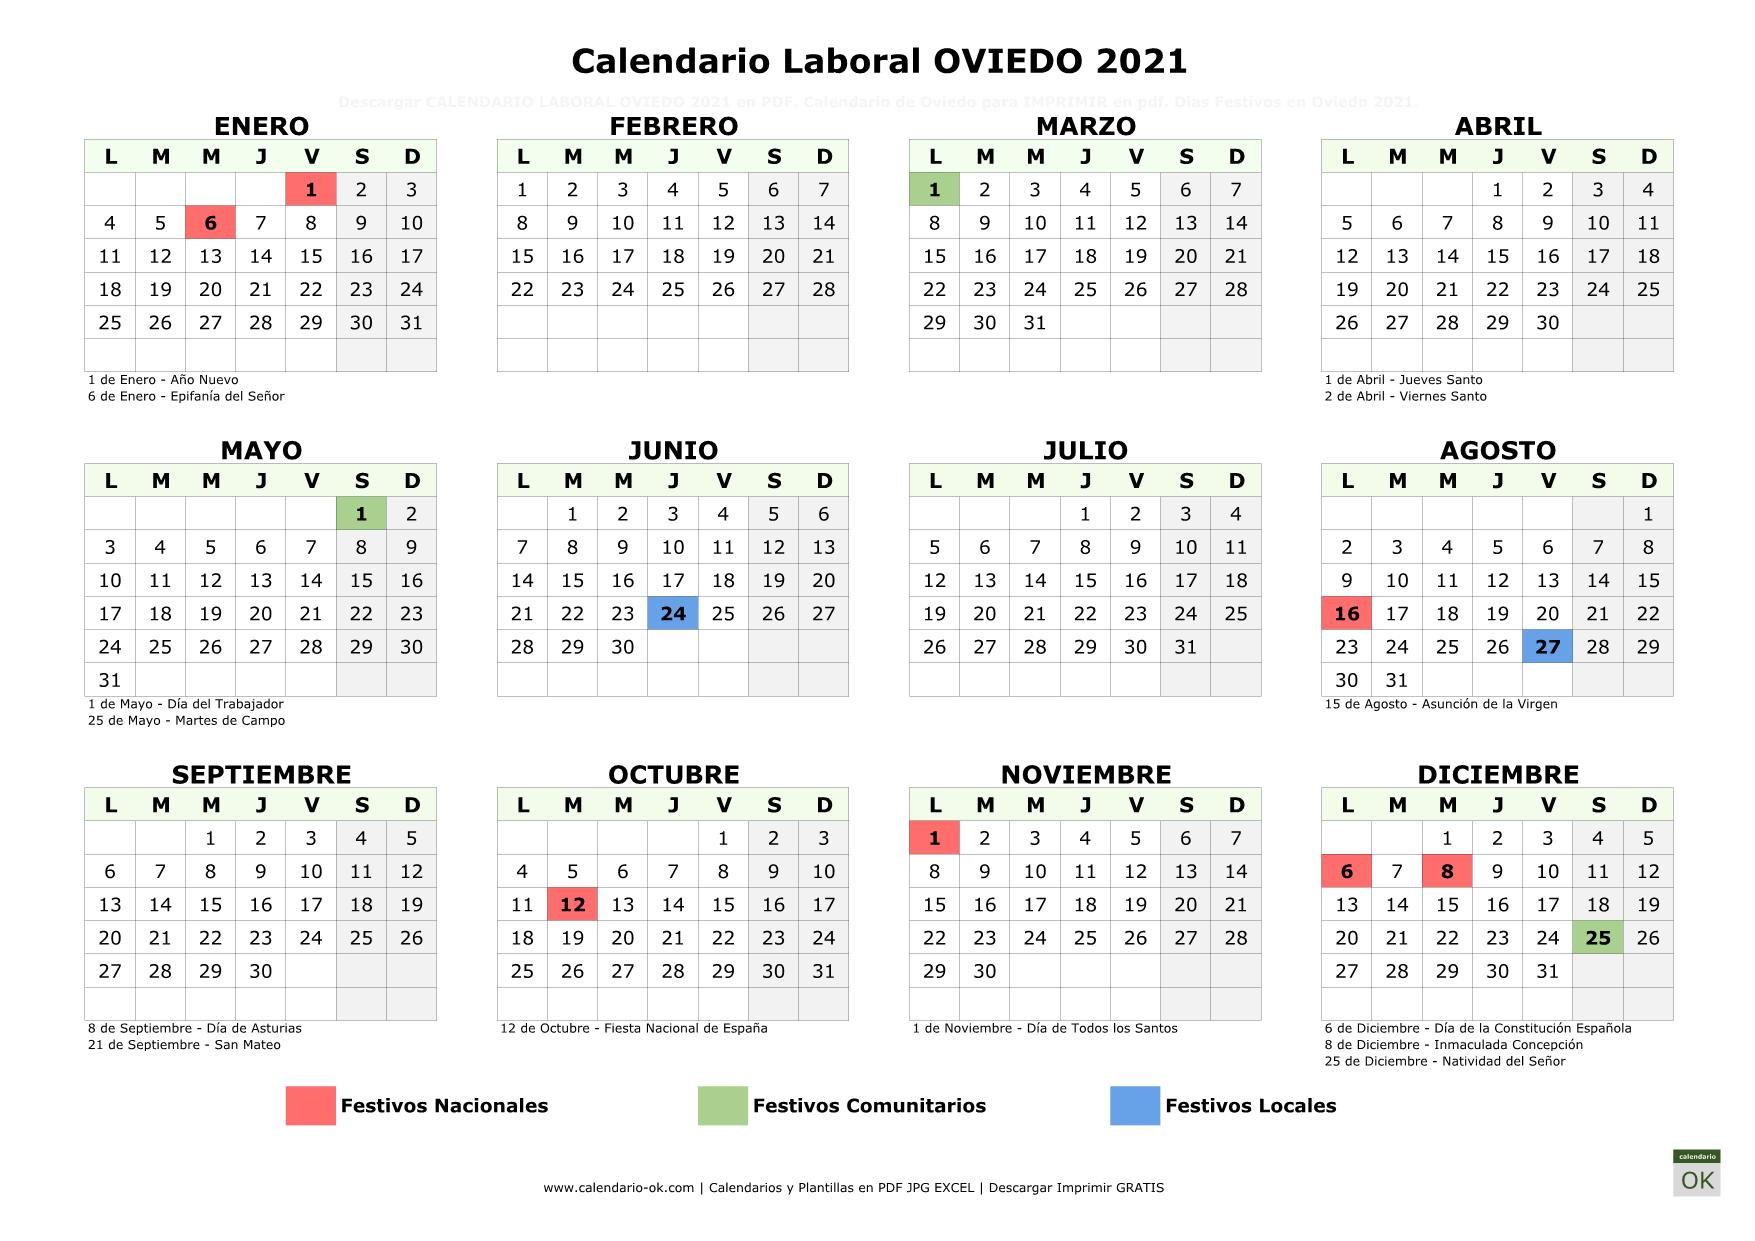 Calendario Laboral Oviedo 2021 horizontal